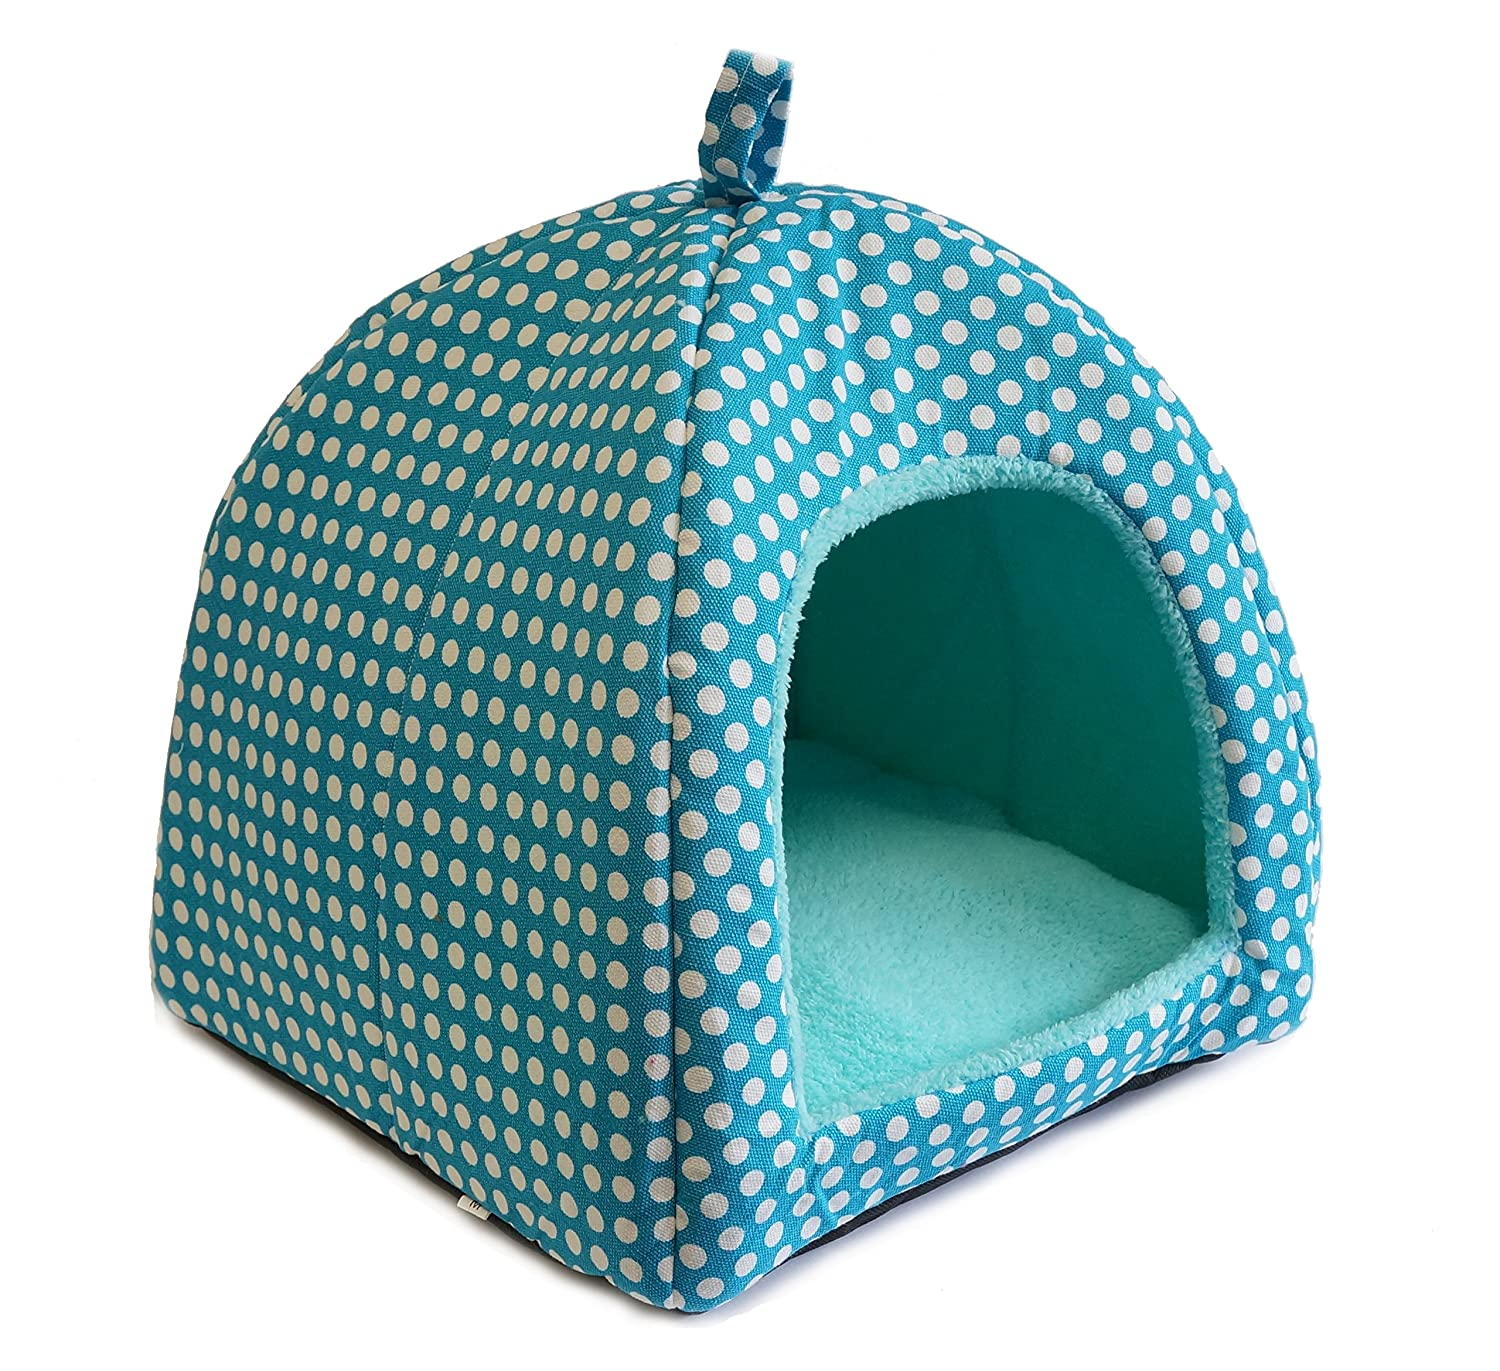 Elisanliving Mongolian Dog Cat Small Animal Pet Canopy Teepee Tent House Bed